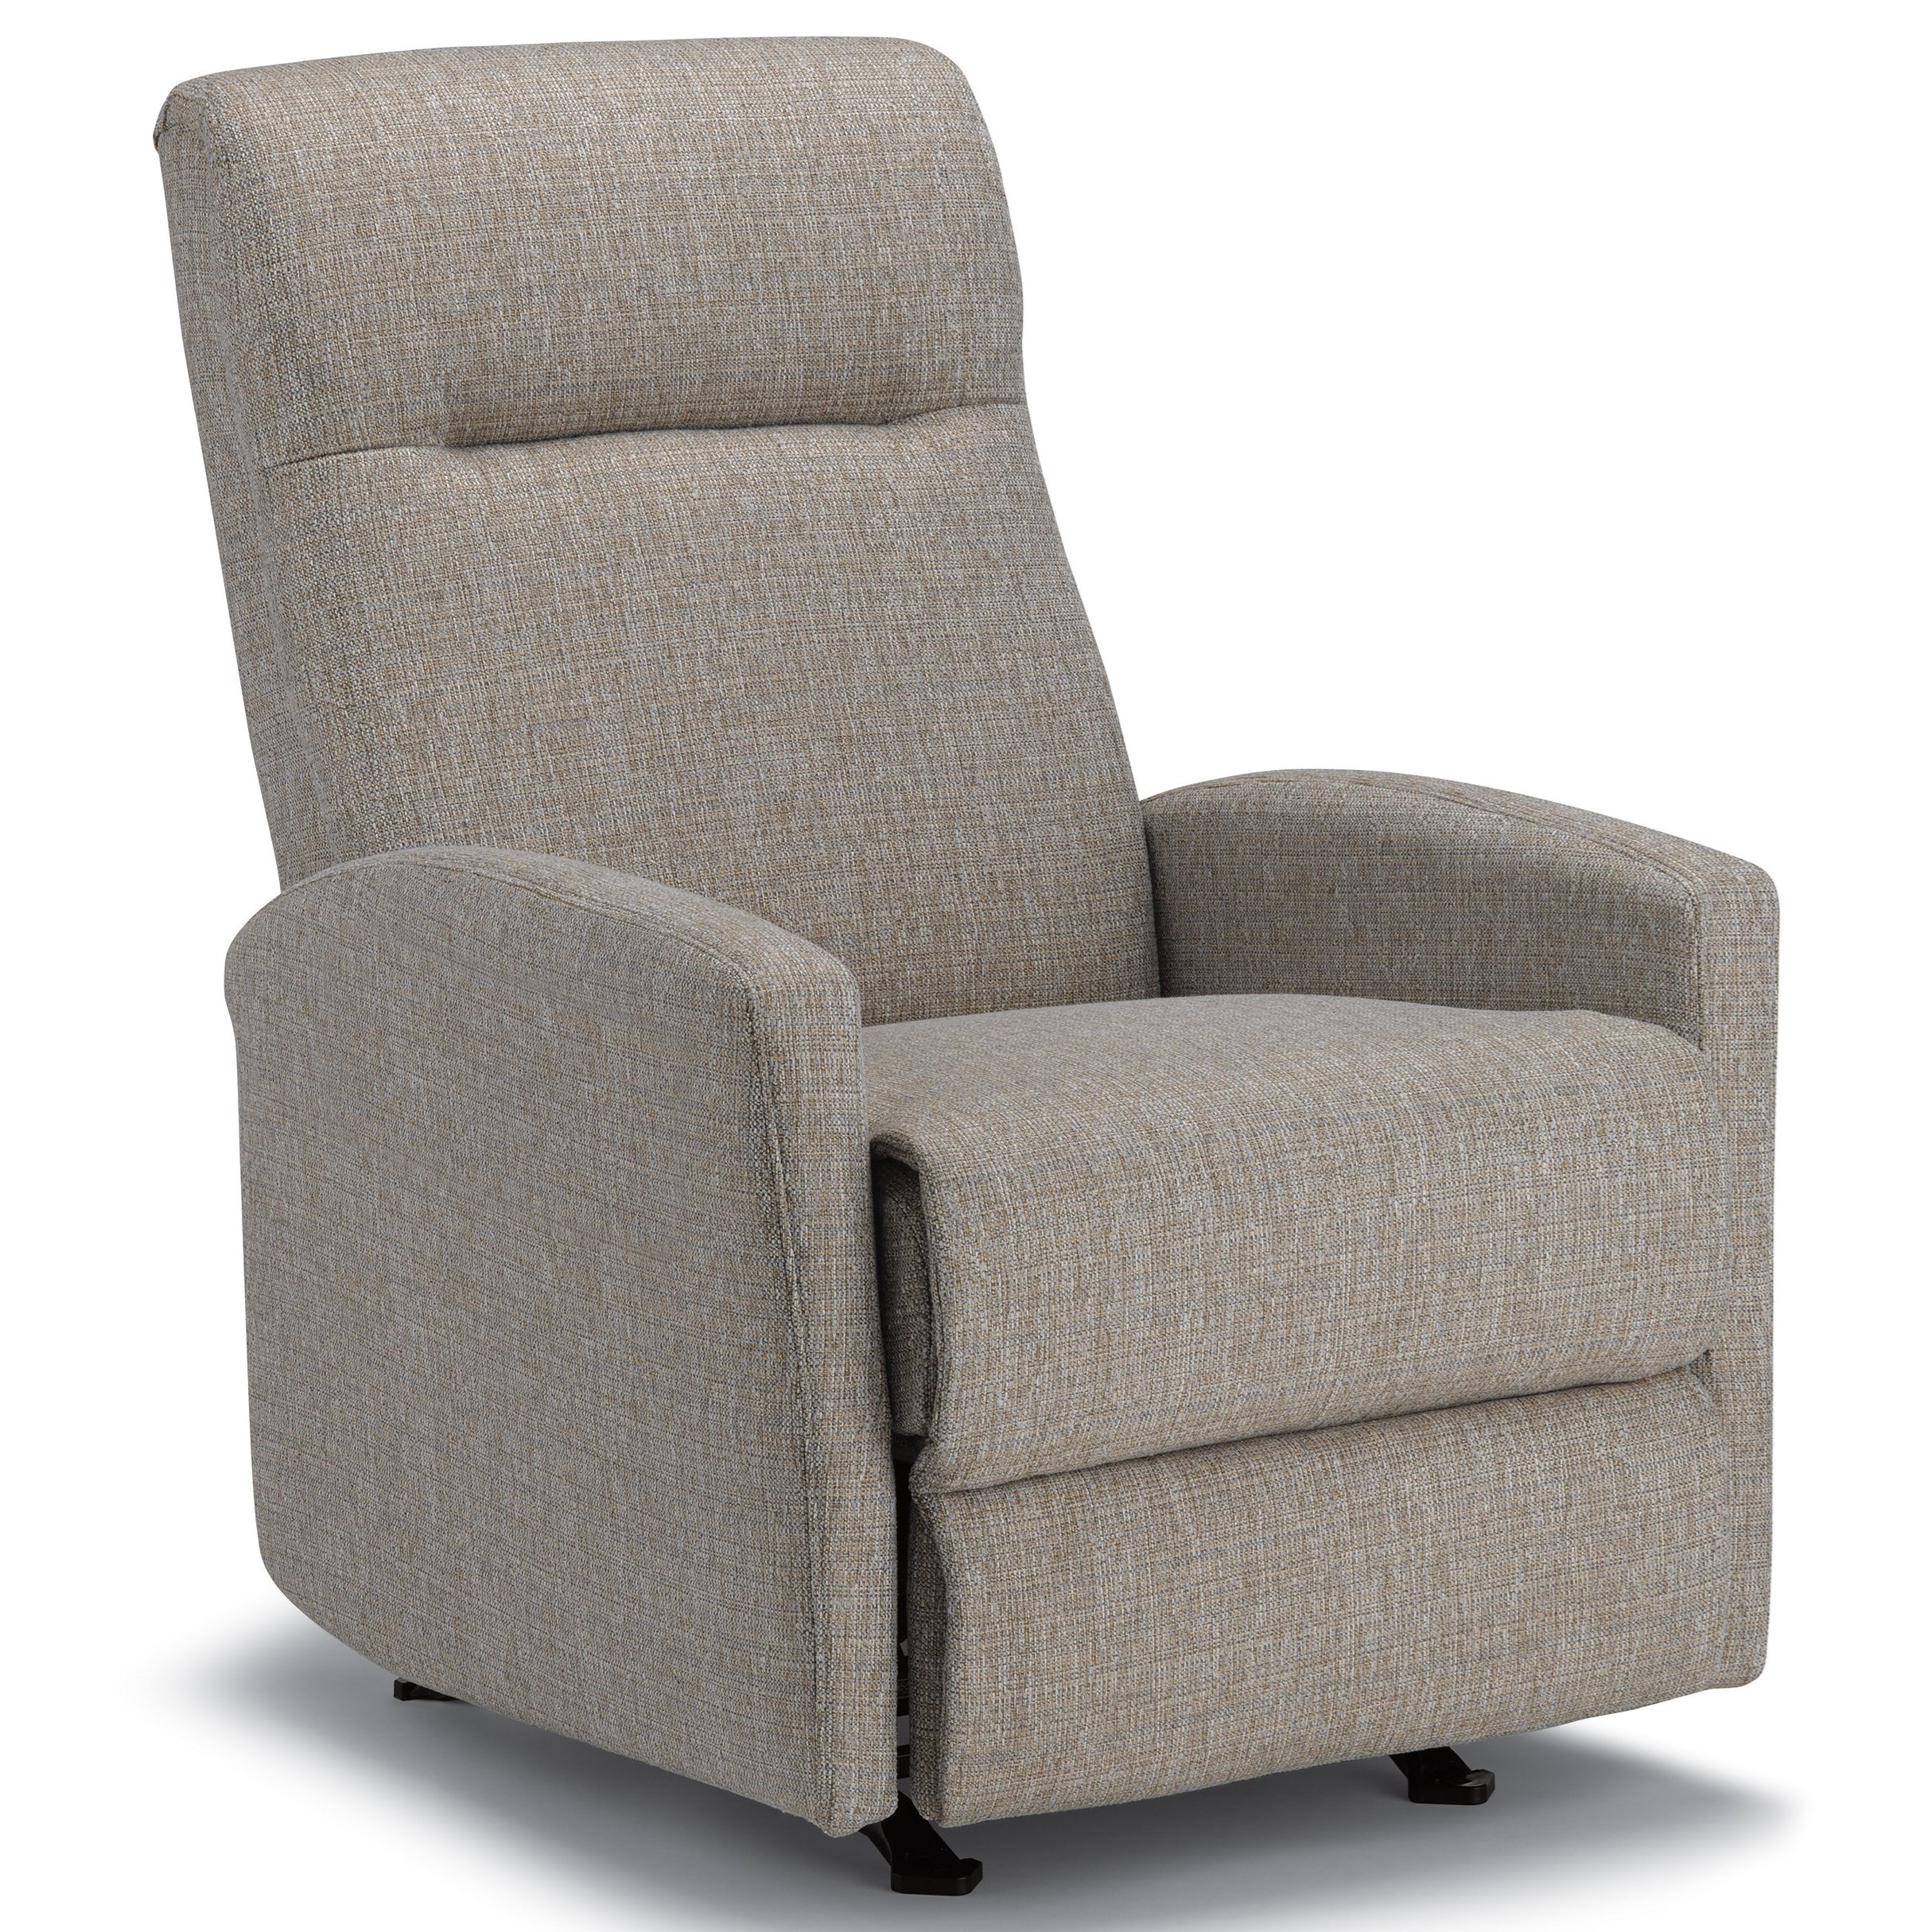 Best Xpress - Arnold Power Rocker Recliner by Best Home Furnishings at Baer's Furniture